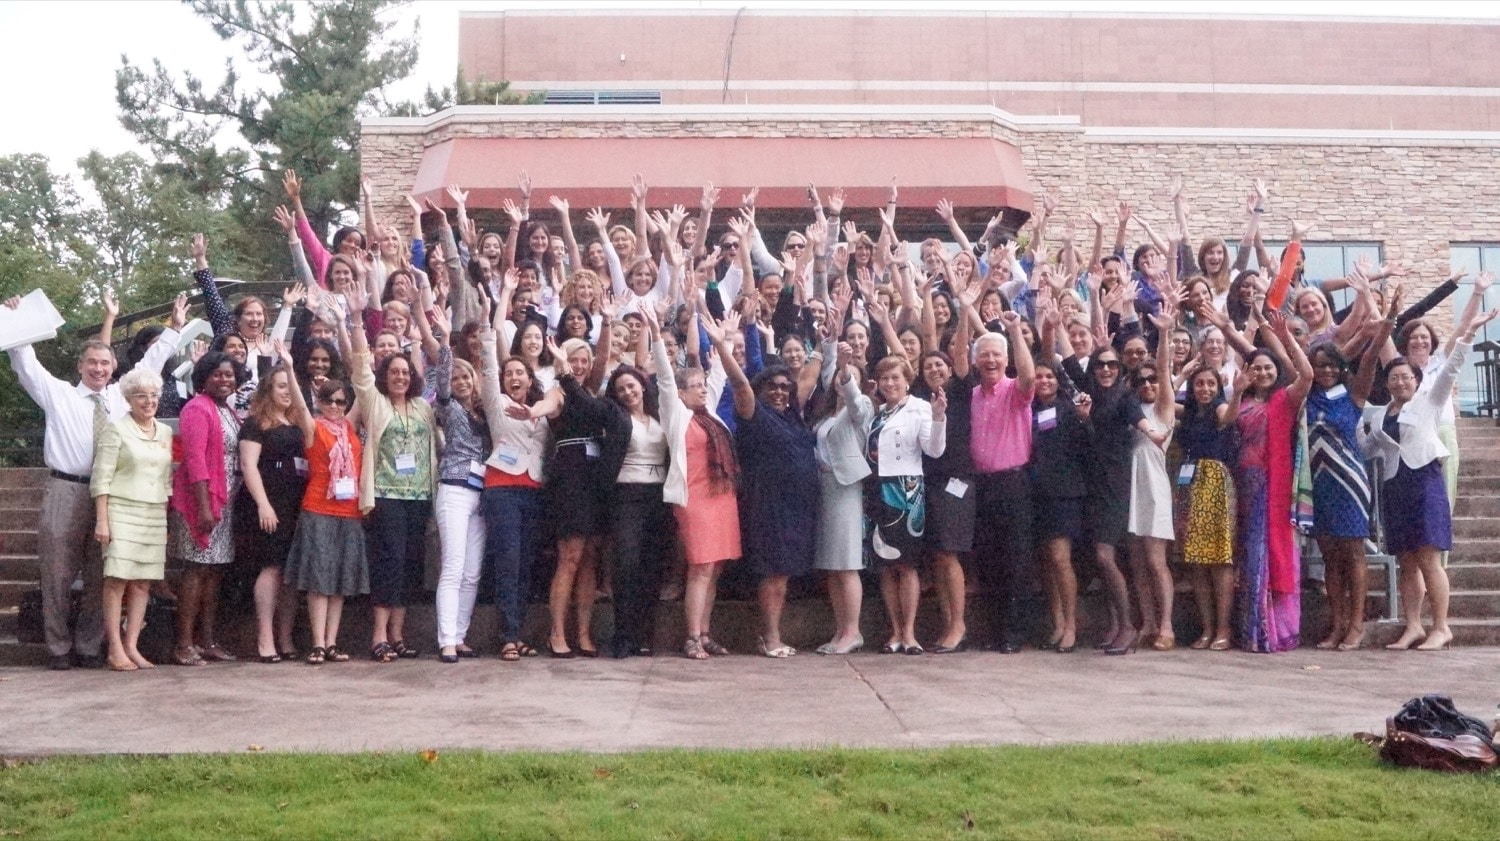 Summer Symposium 2014 Group Shot Hands Up